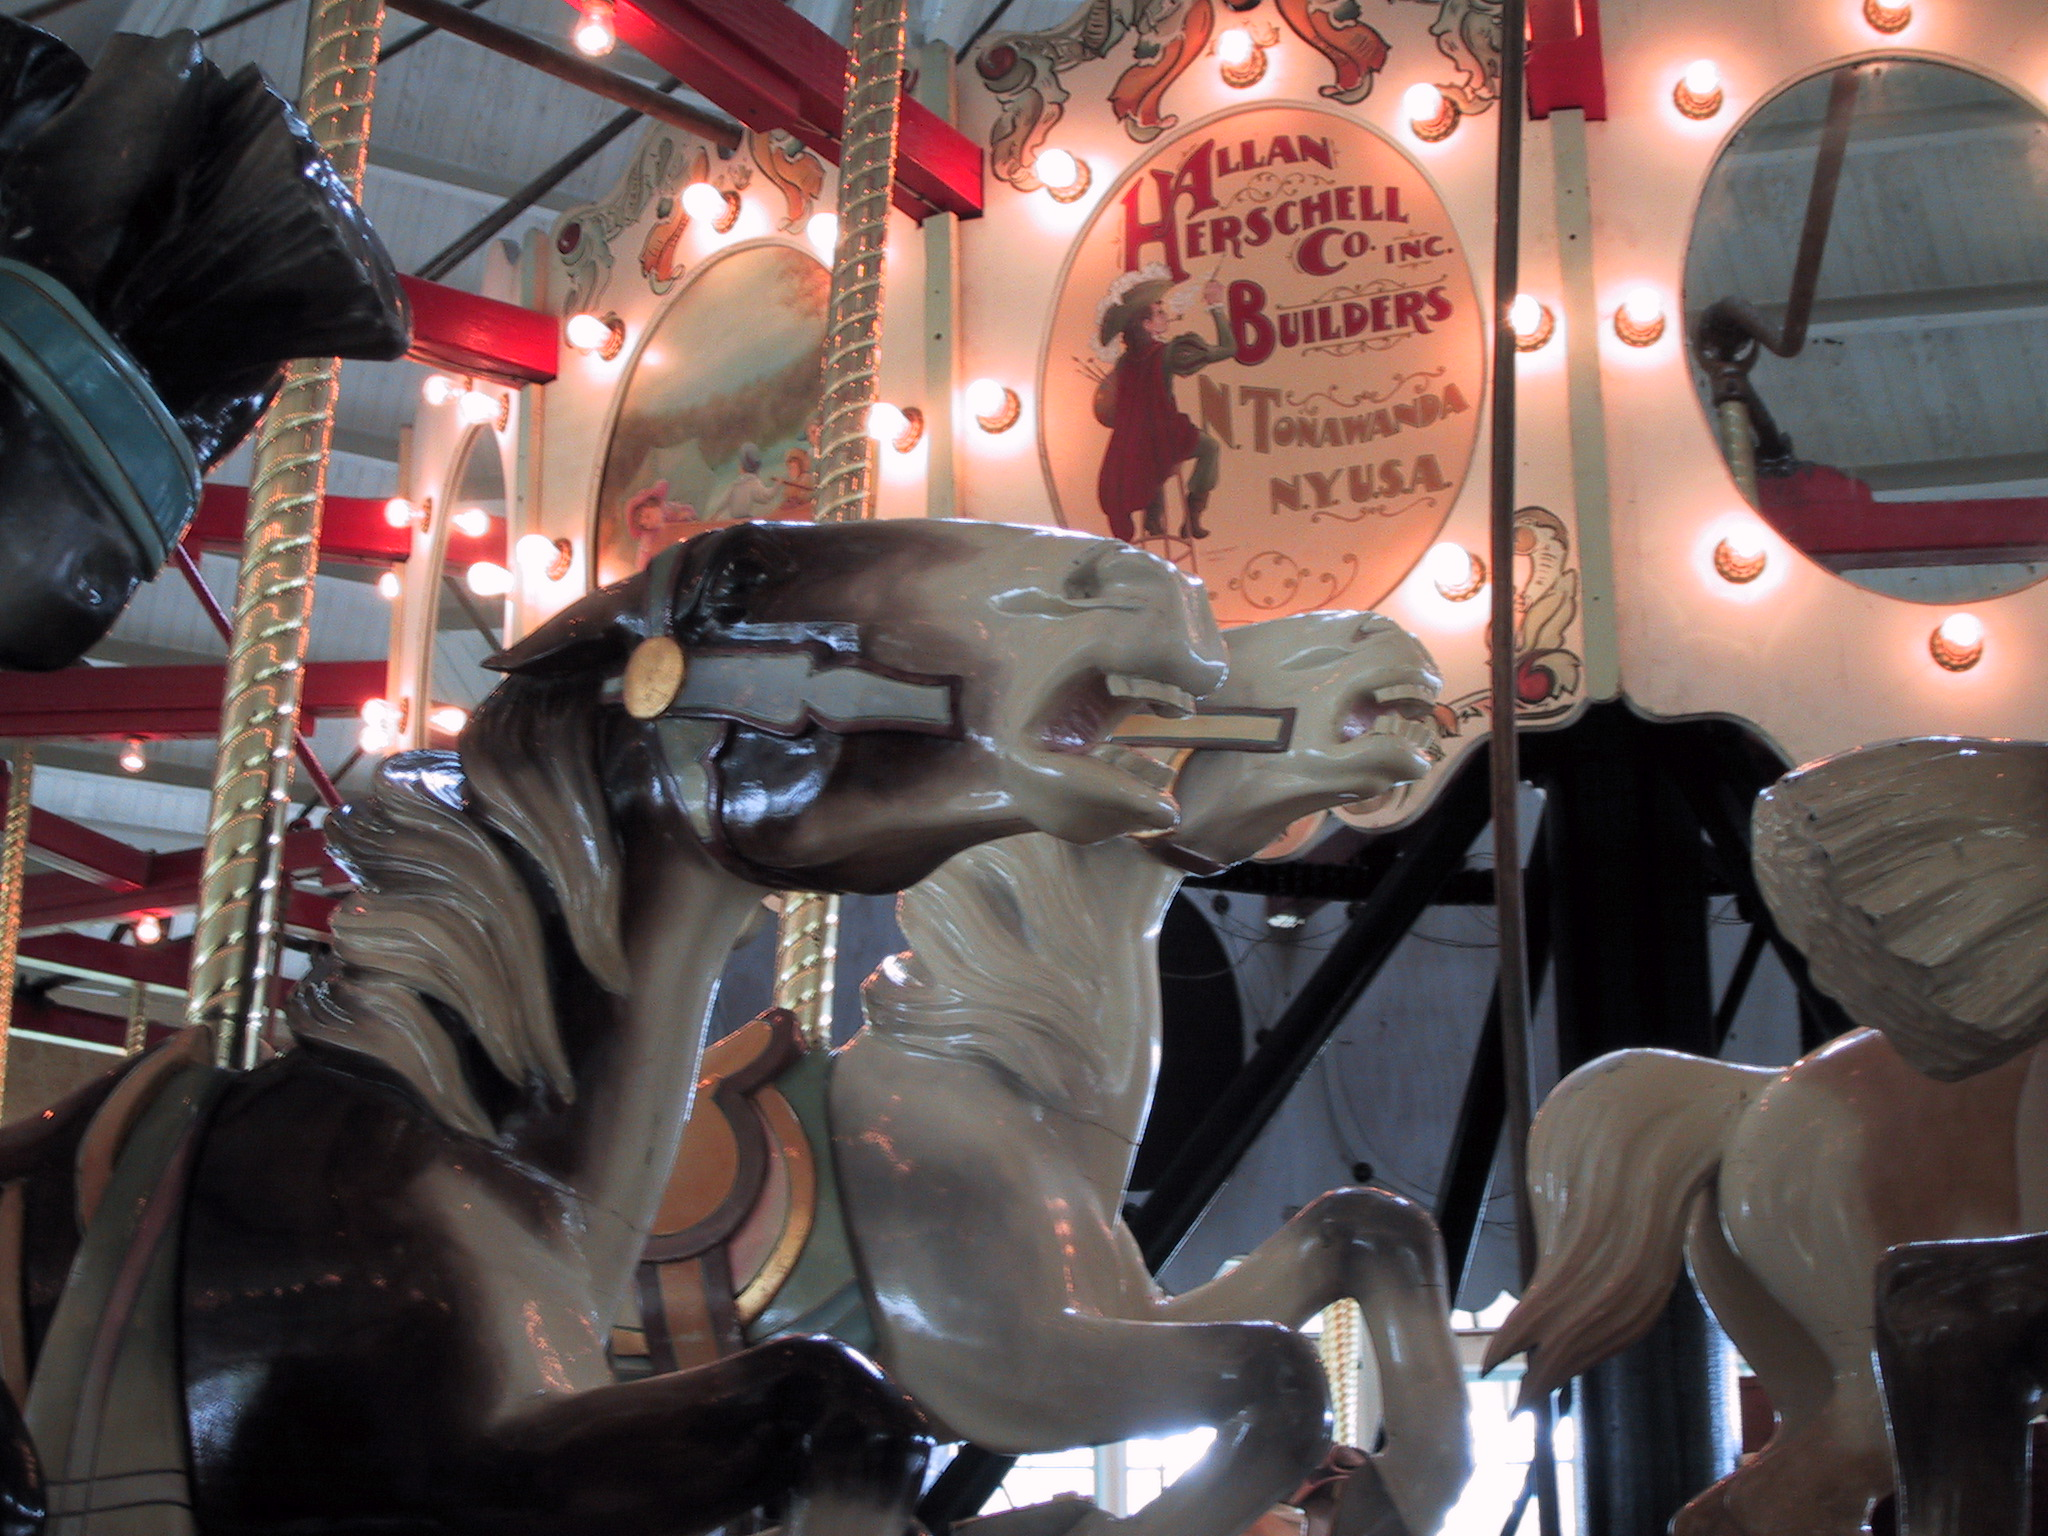 Binghamton Antique Carousel